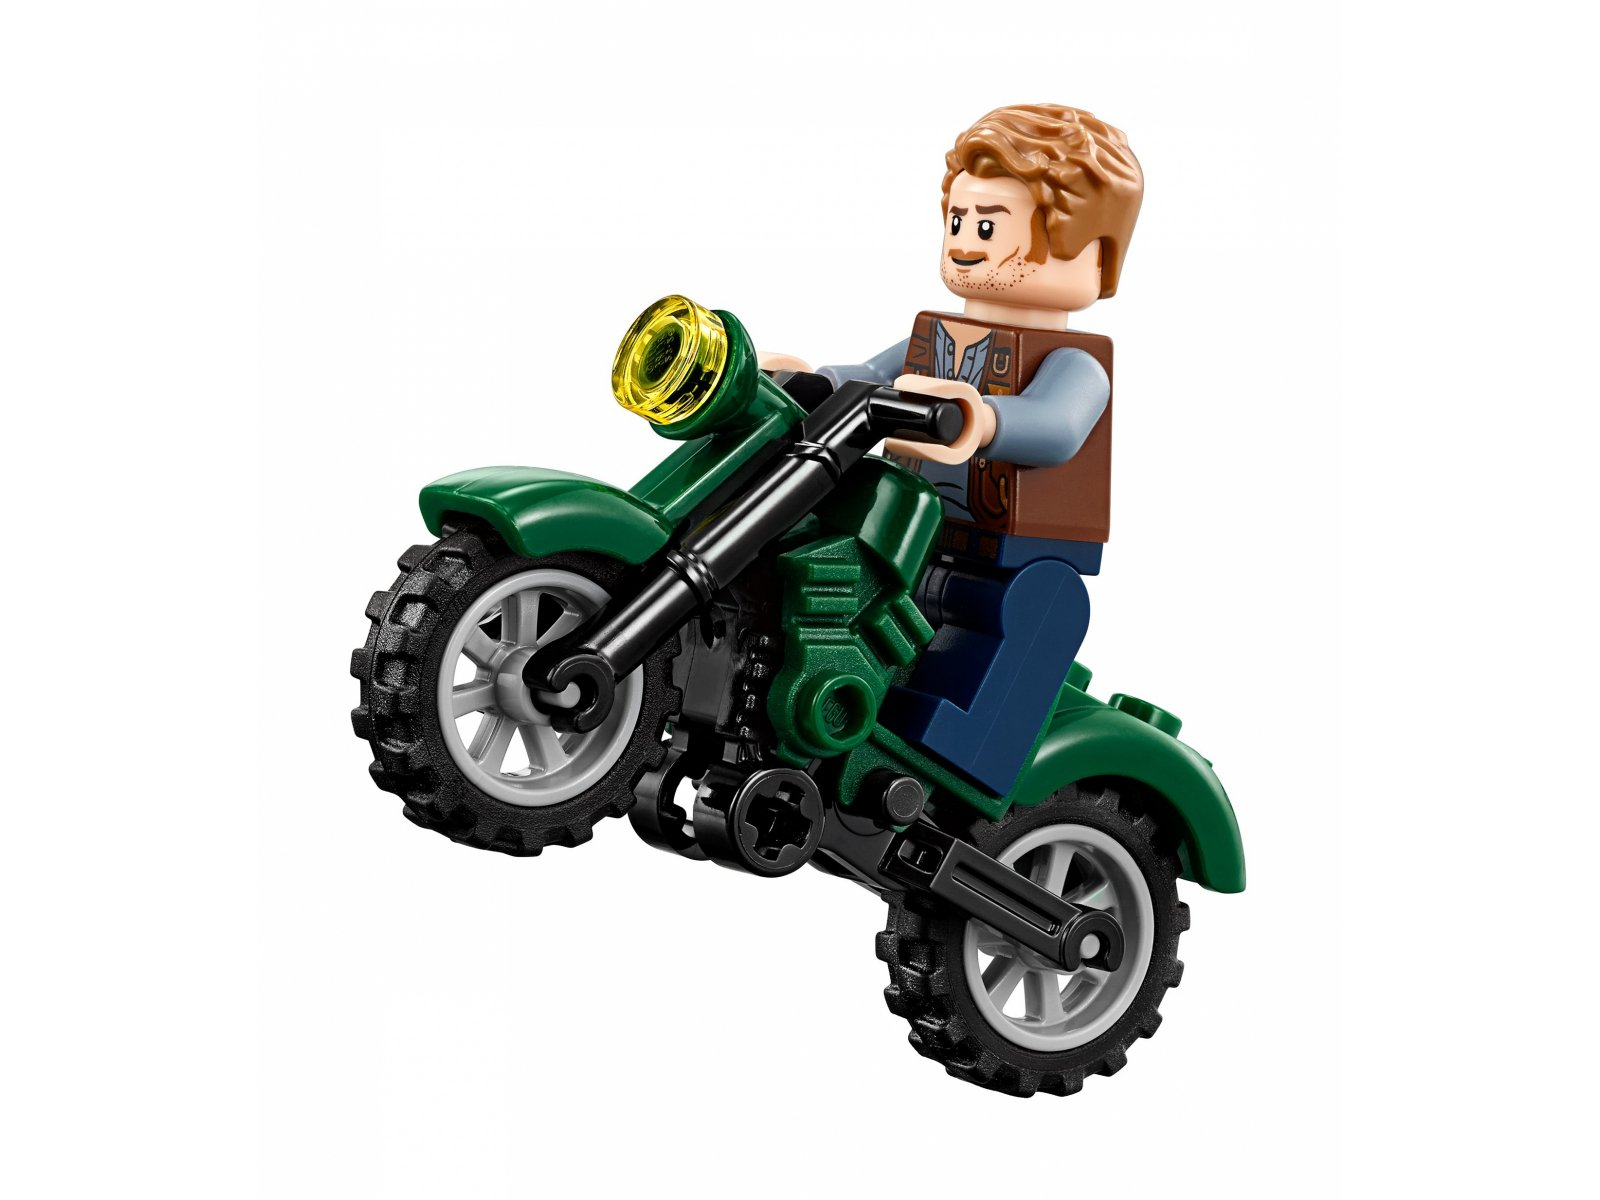 LEGO Jurassic World™ Atak indoraptora 75930